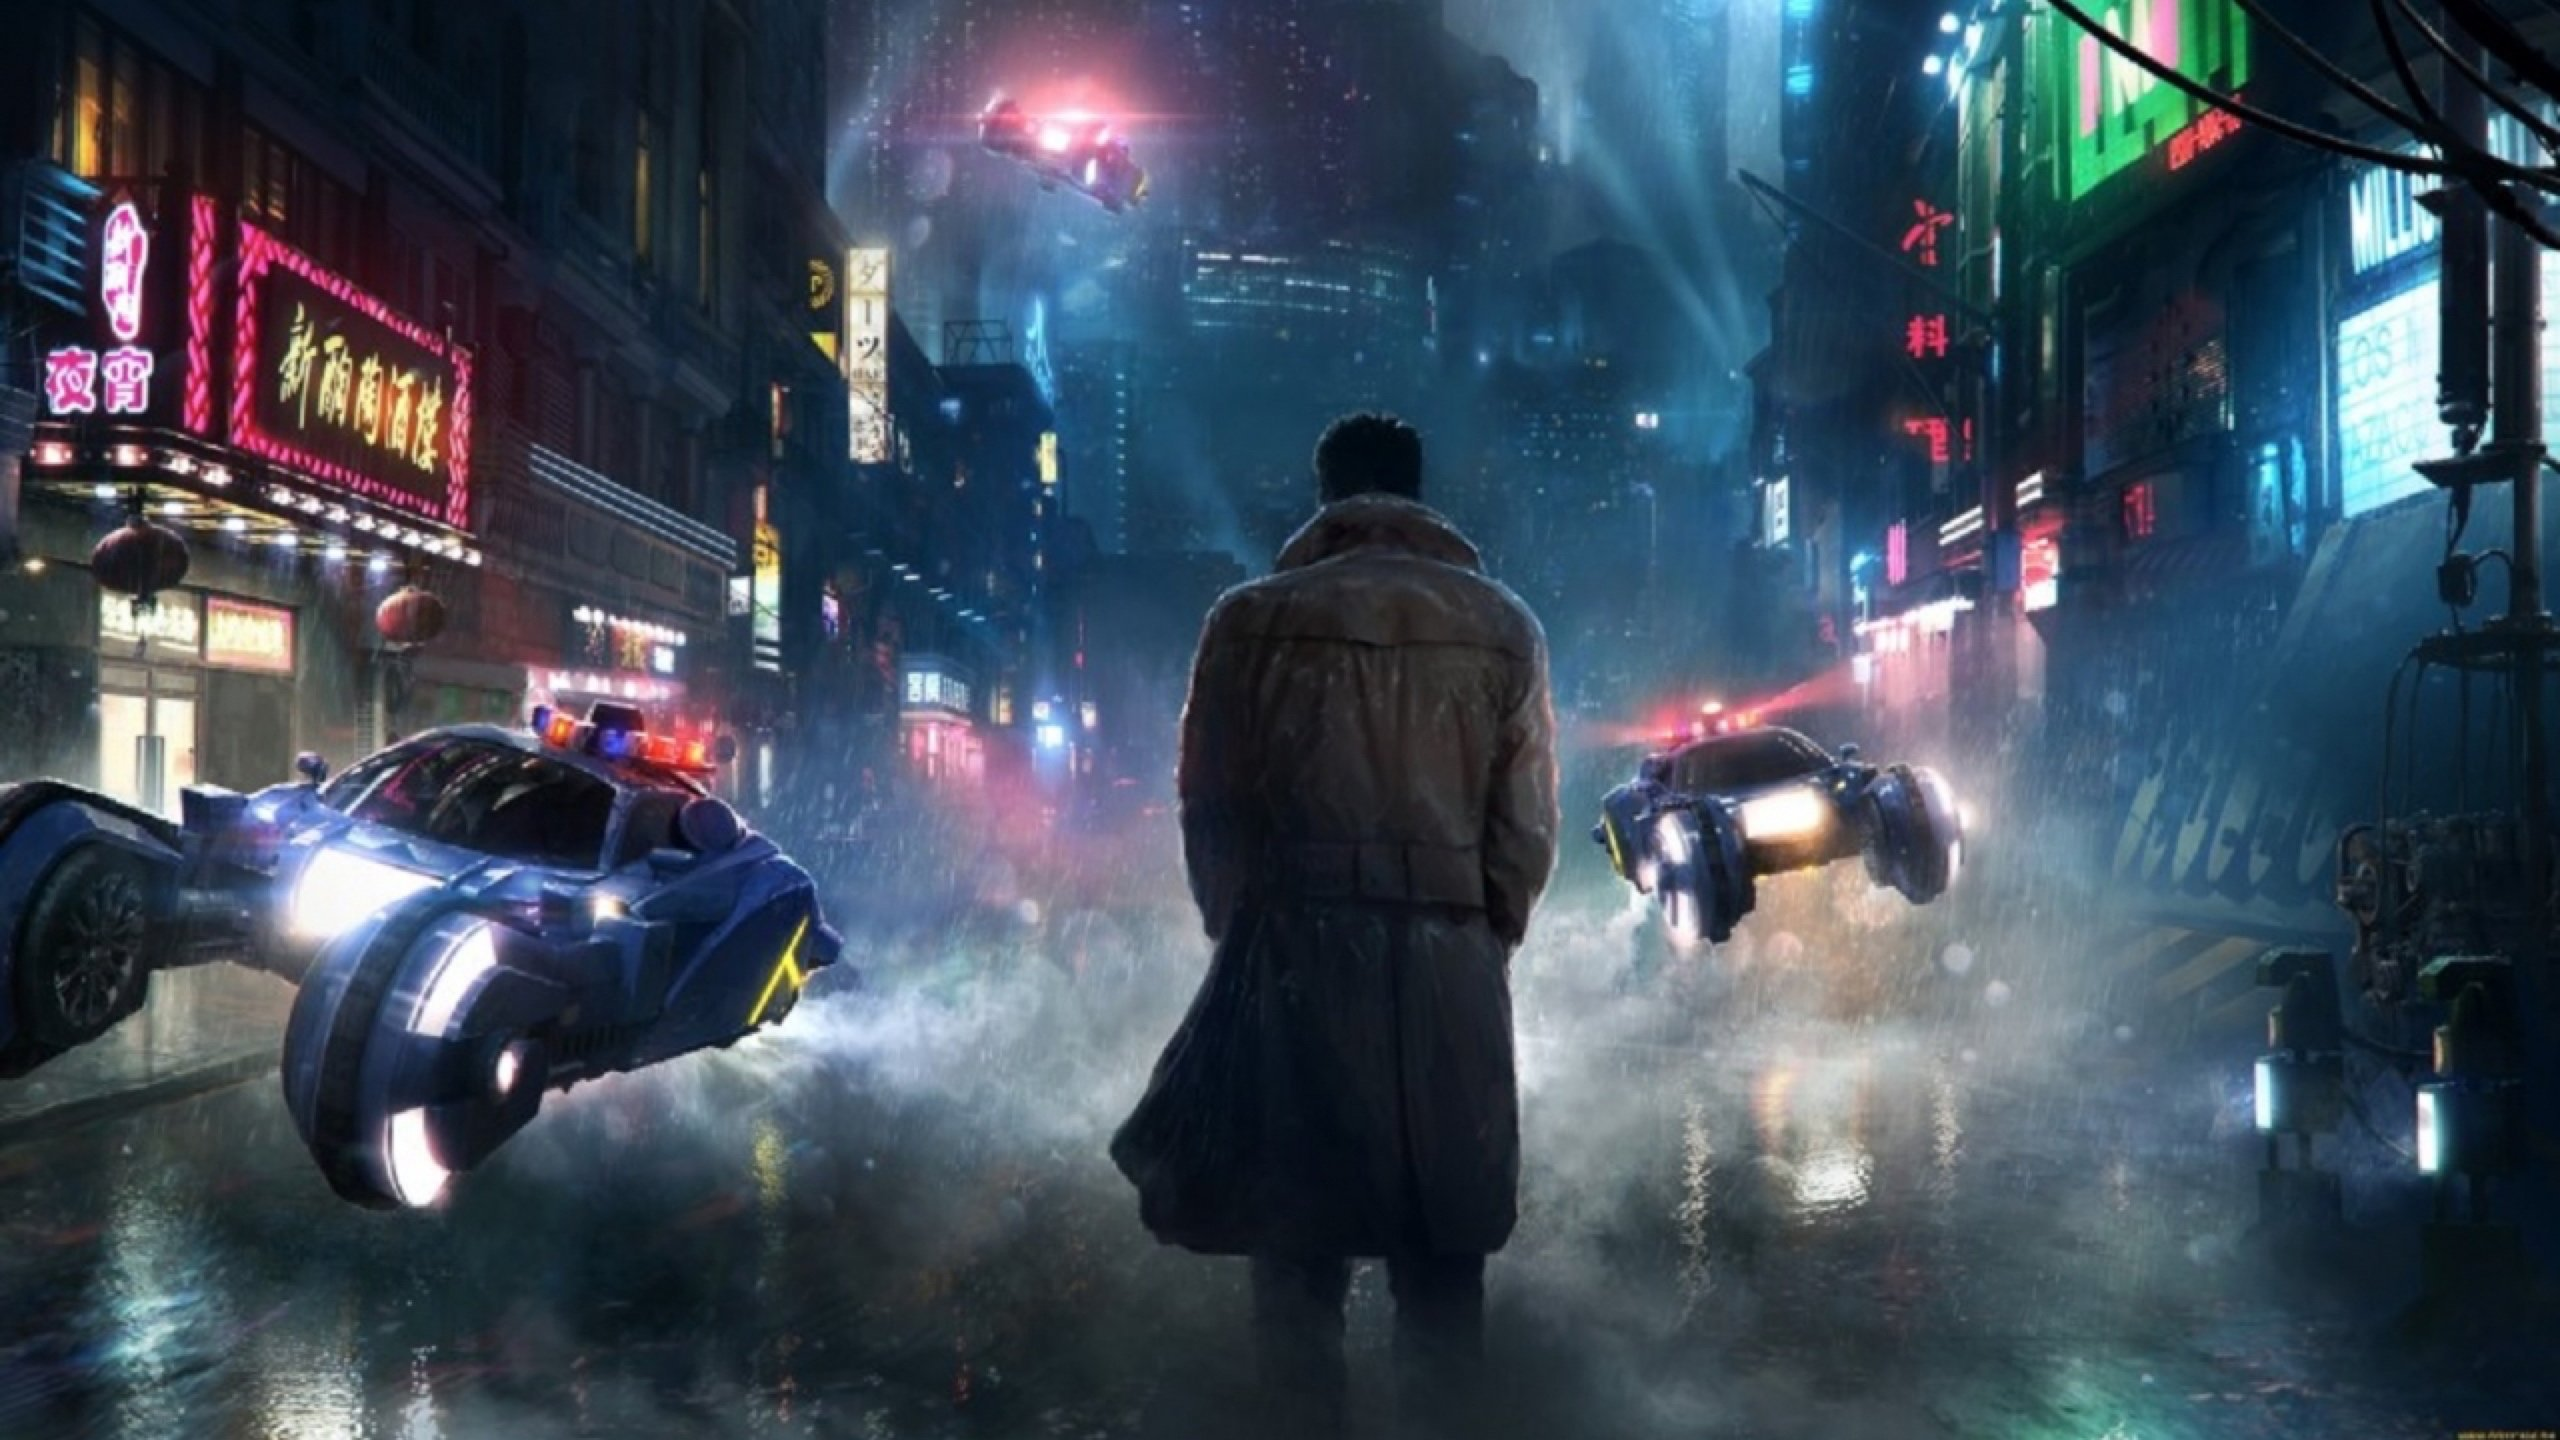 Blade Runner Visual Effects Interview With John Nelson - The miniature set used for blade runner 2049 will change the way you see movies